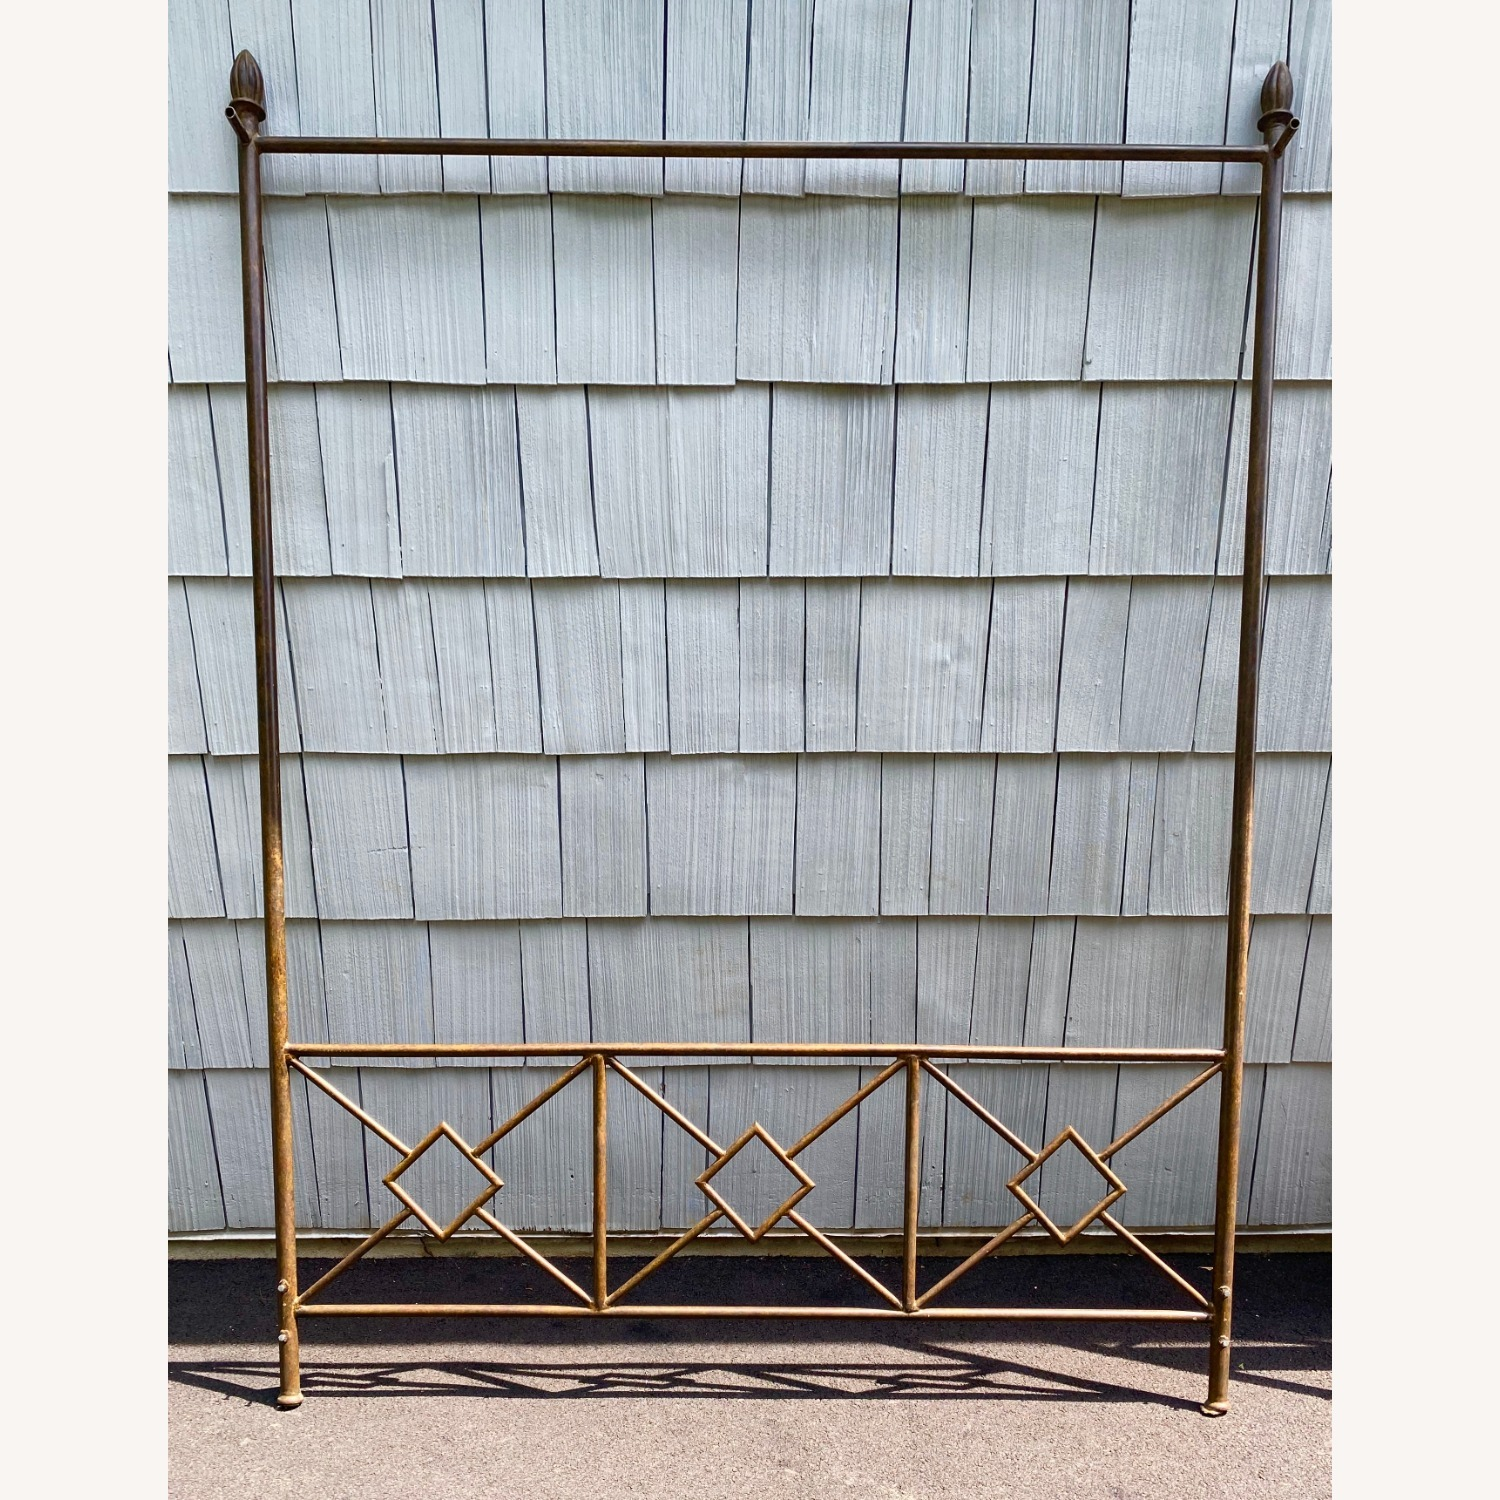 King Sized Canopy Iron Bed Frame - image-4